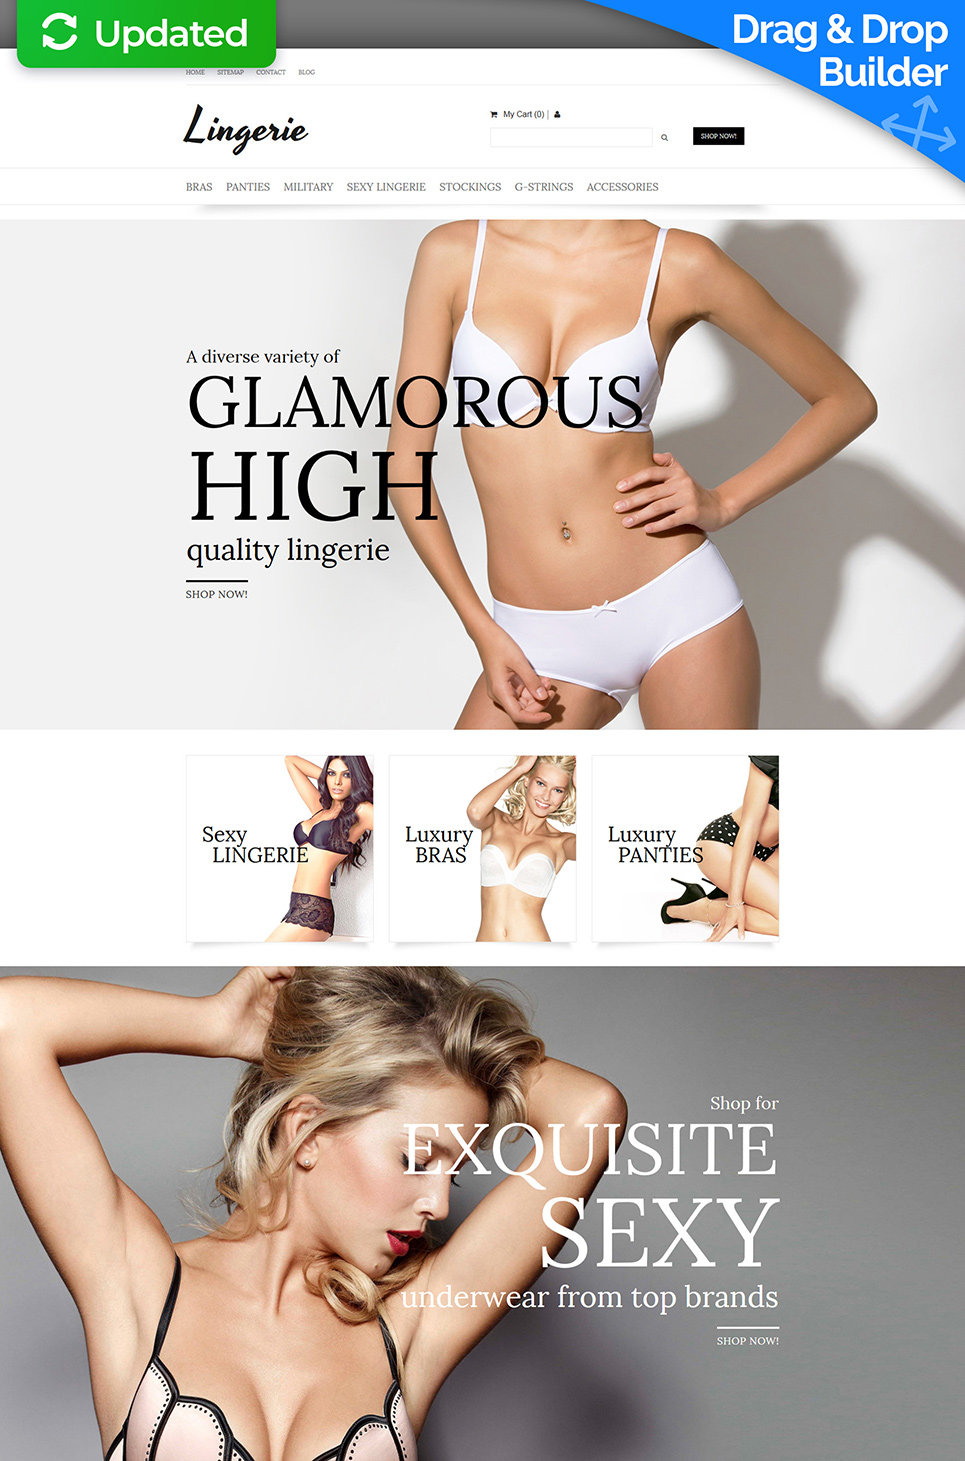 Fashion Responsive Ecommerce Template #58482 - image